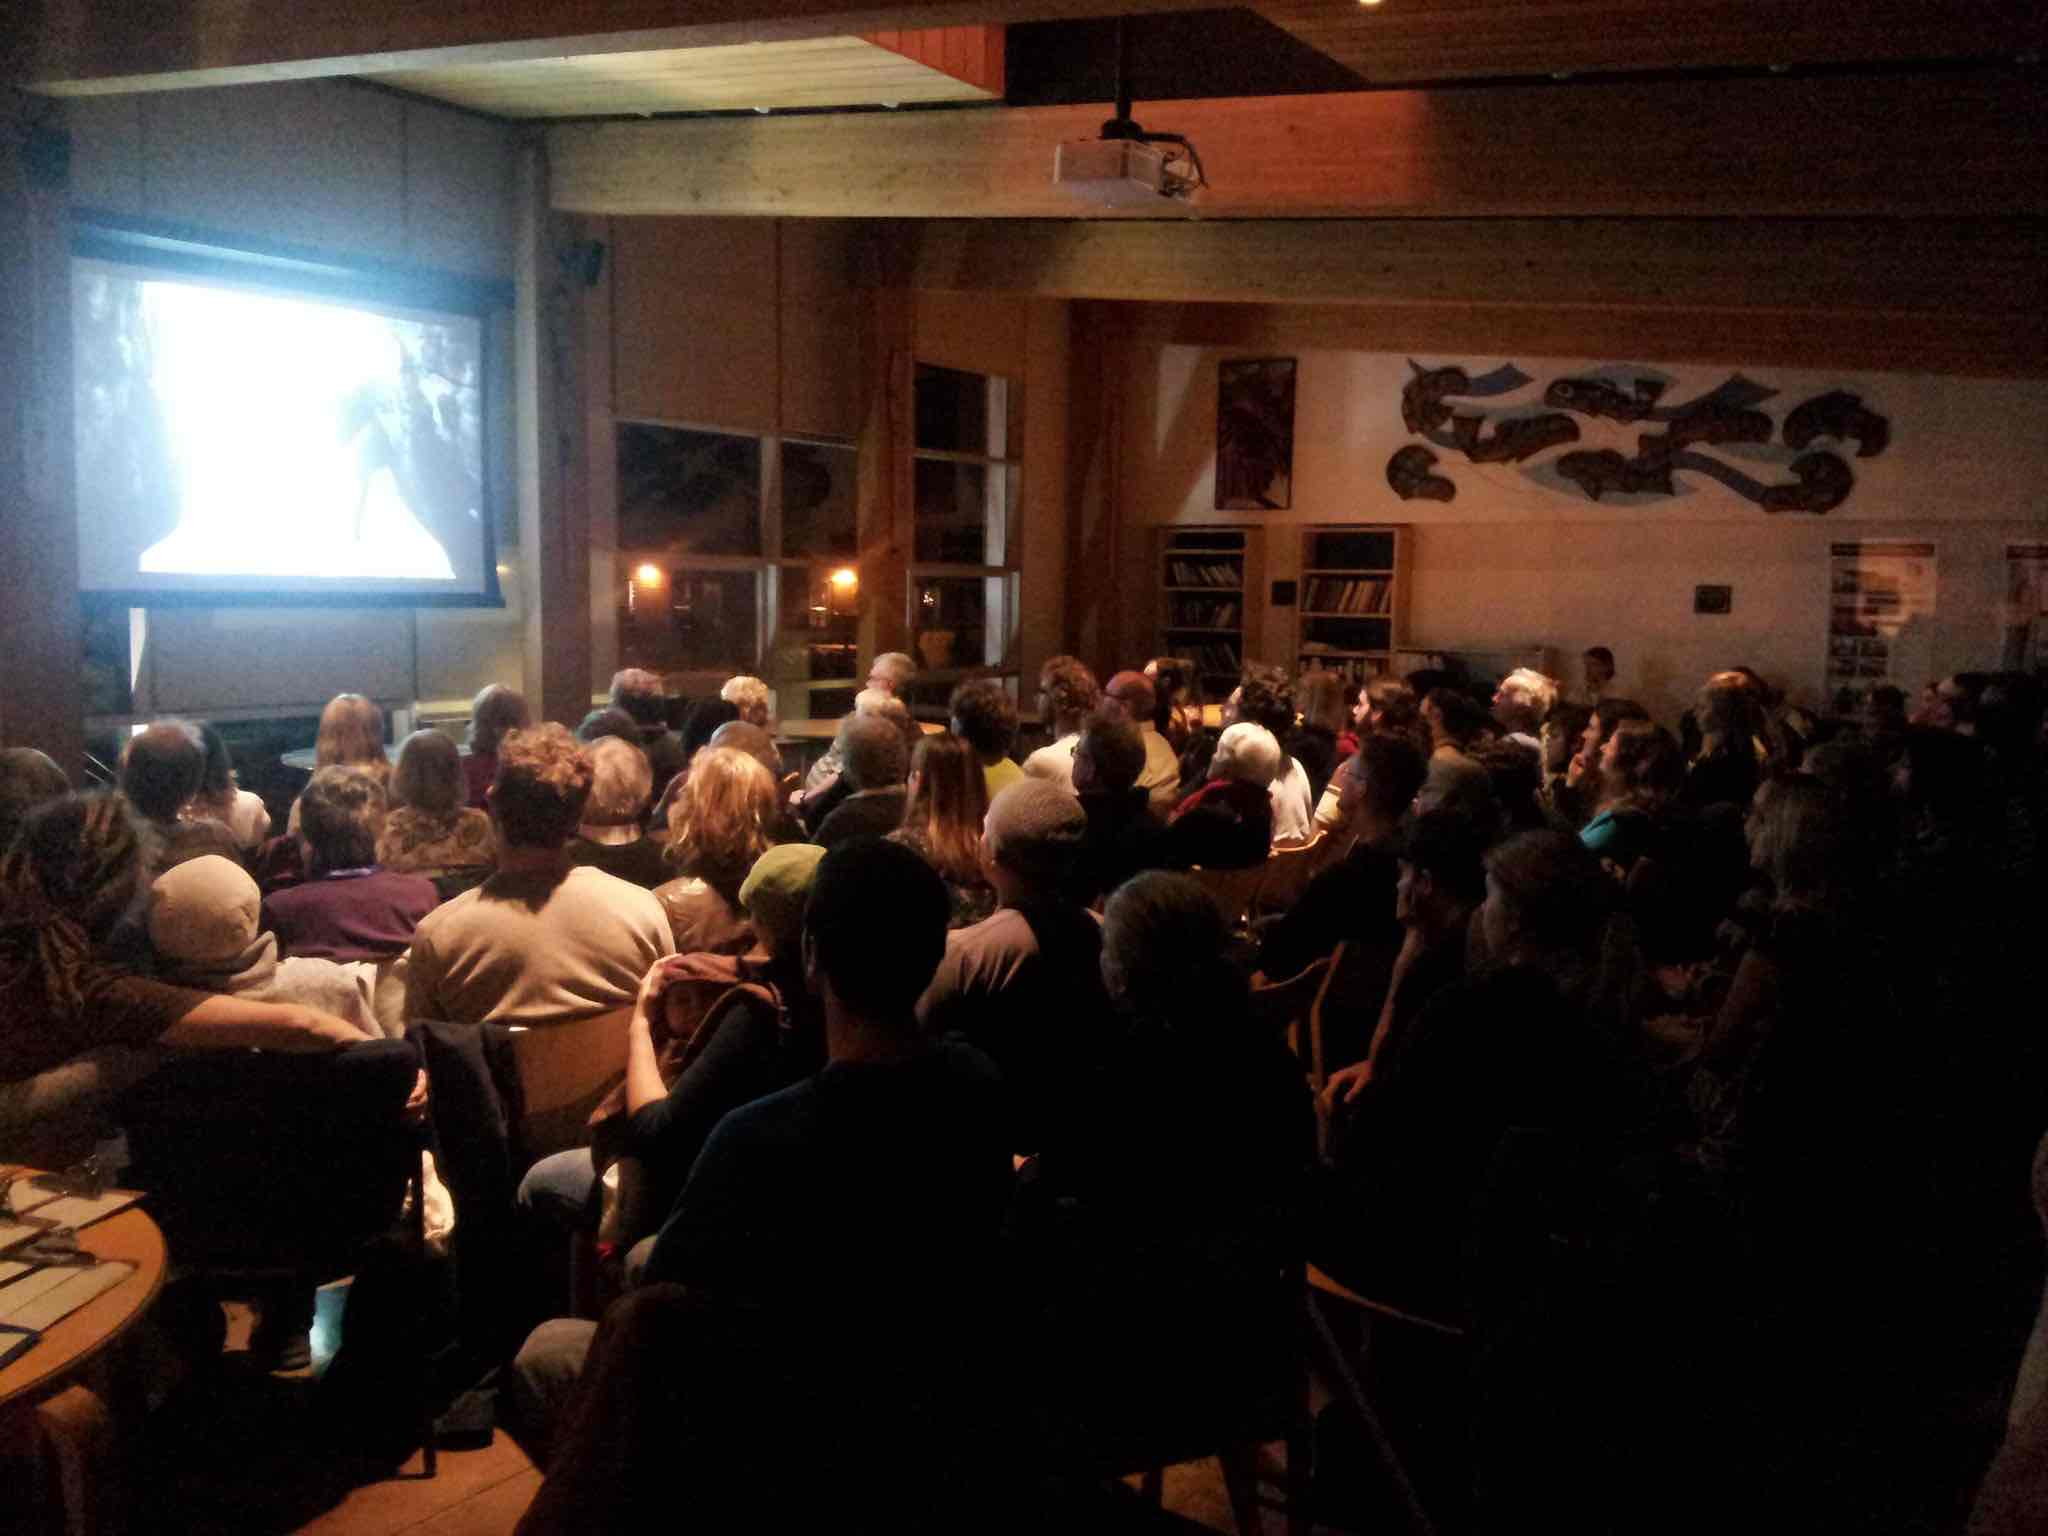 A wood panelled room full of people with a projector at the front.